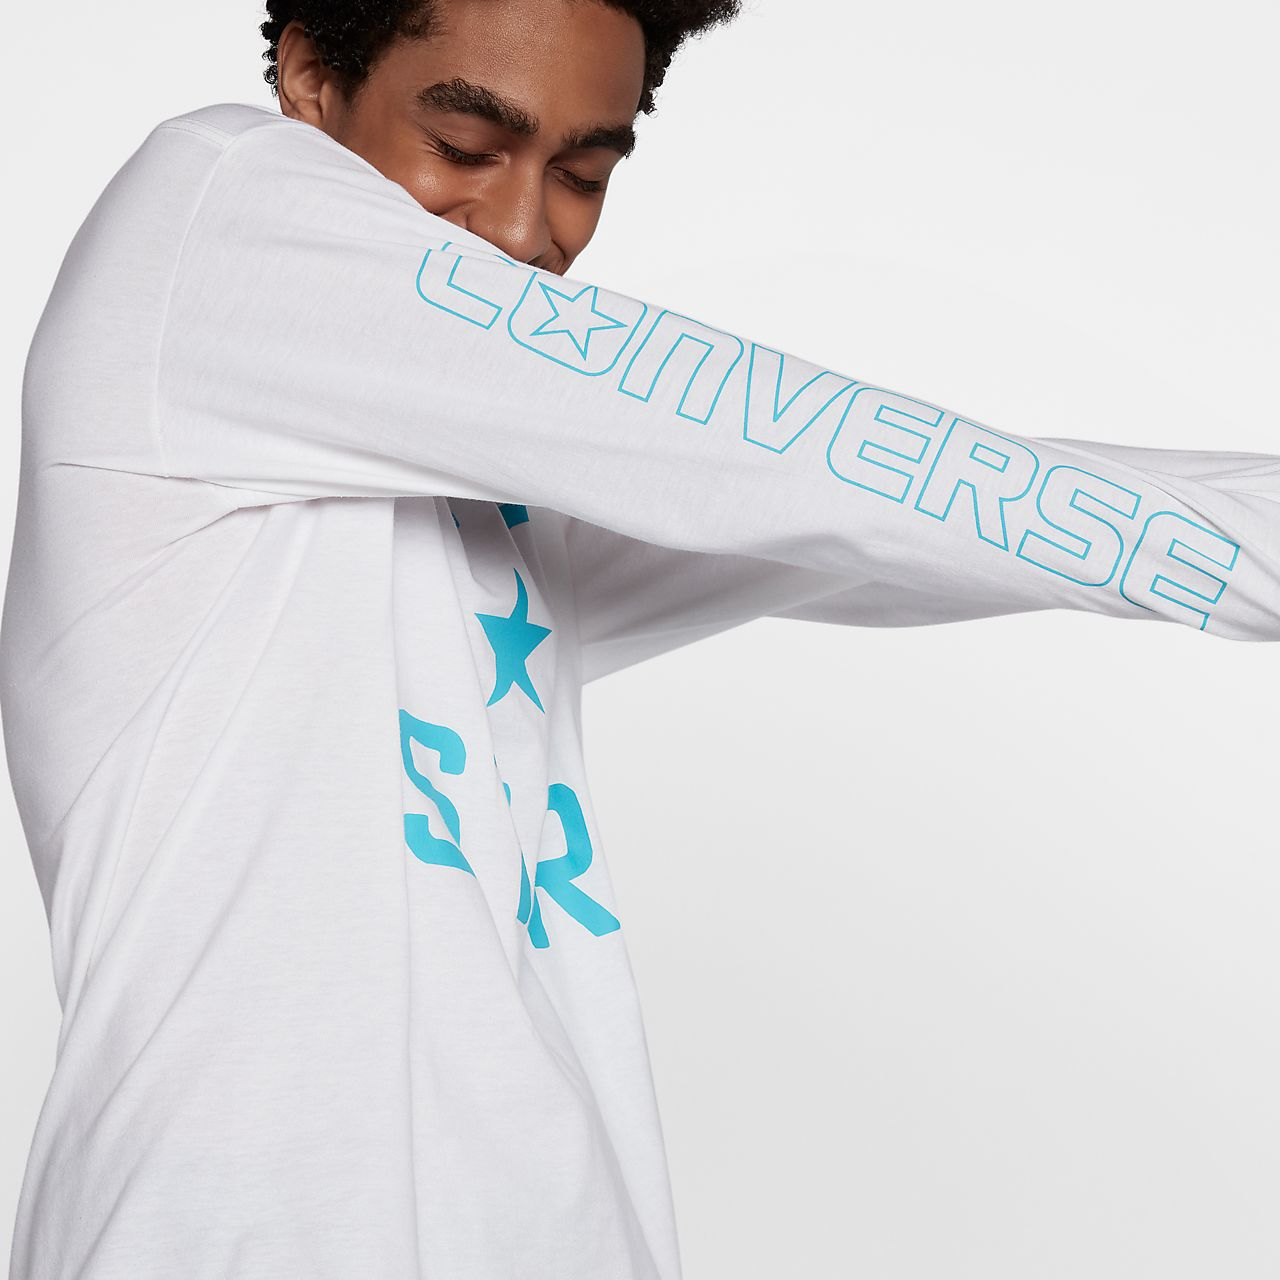 converse one star t shirt